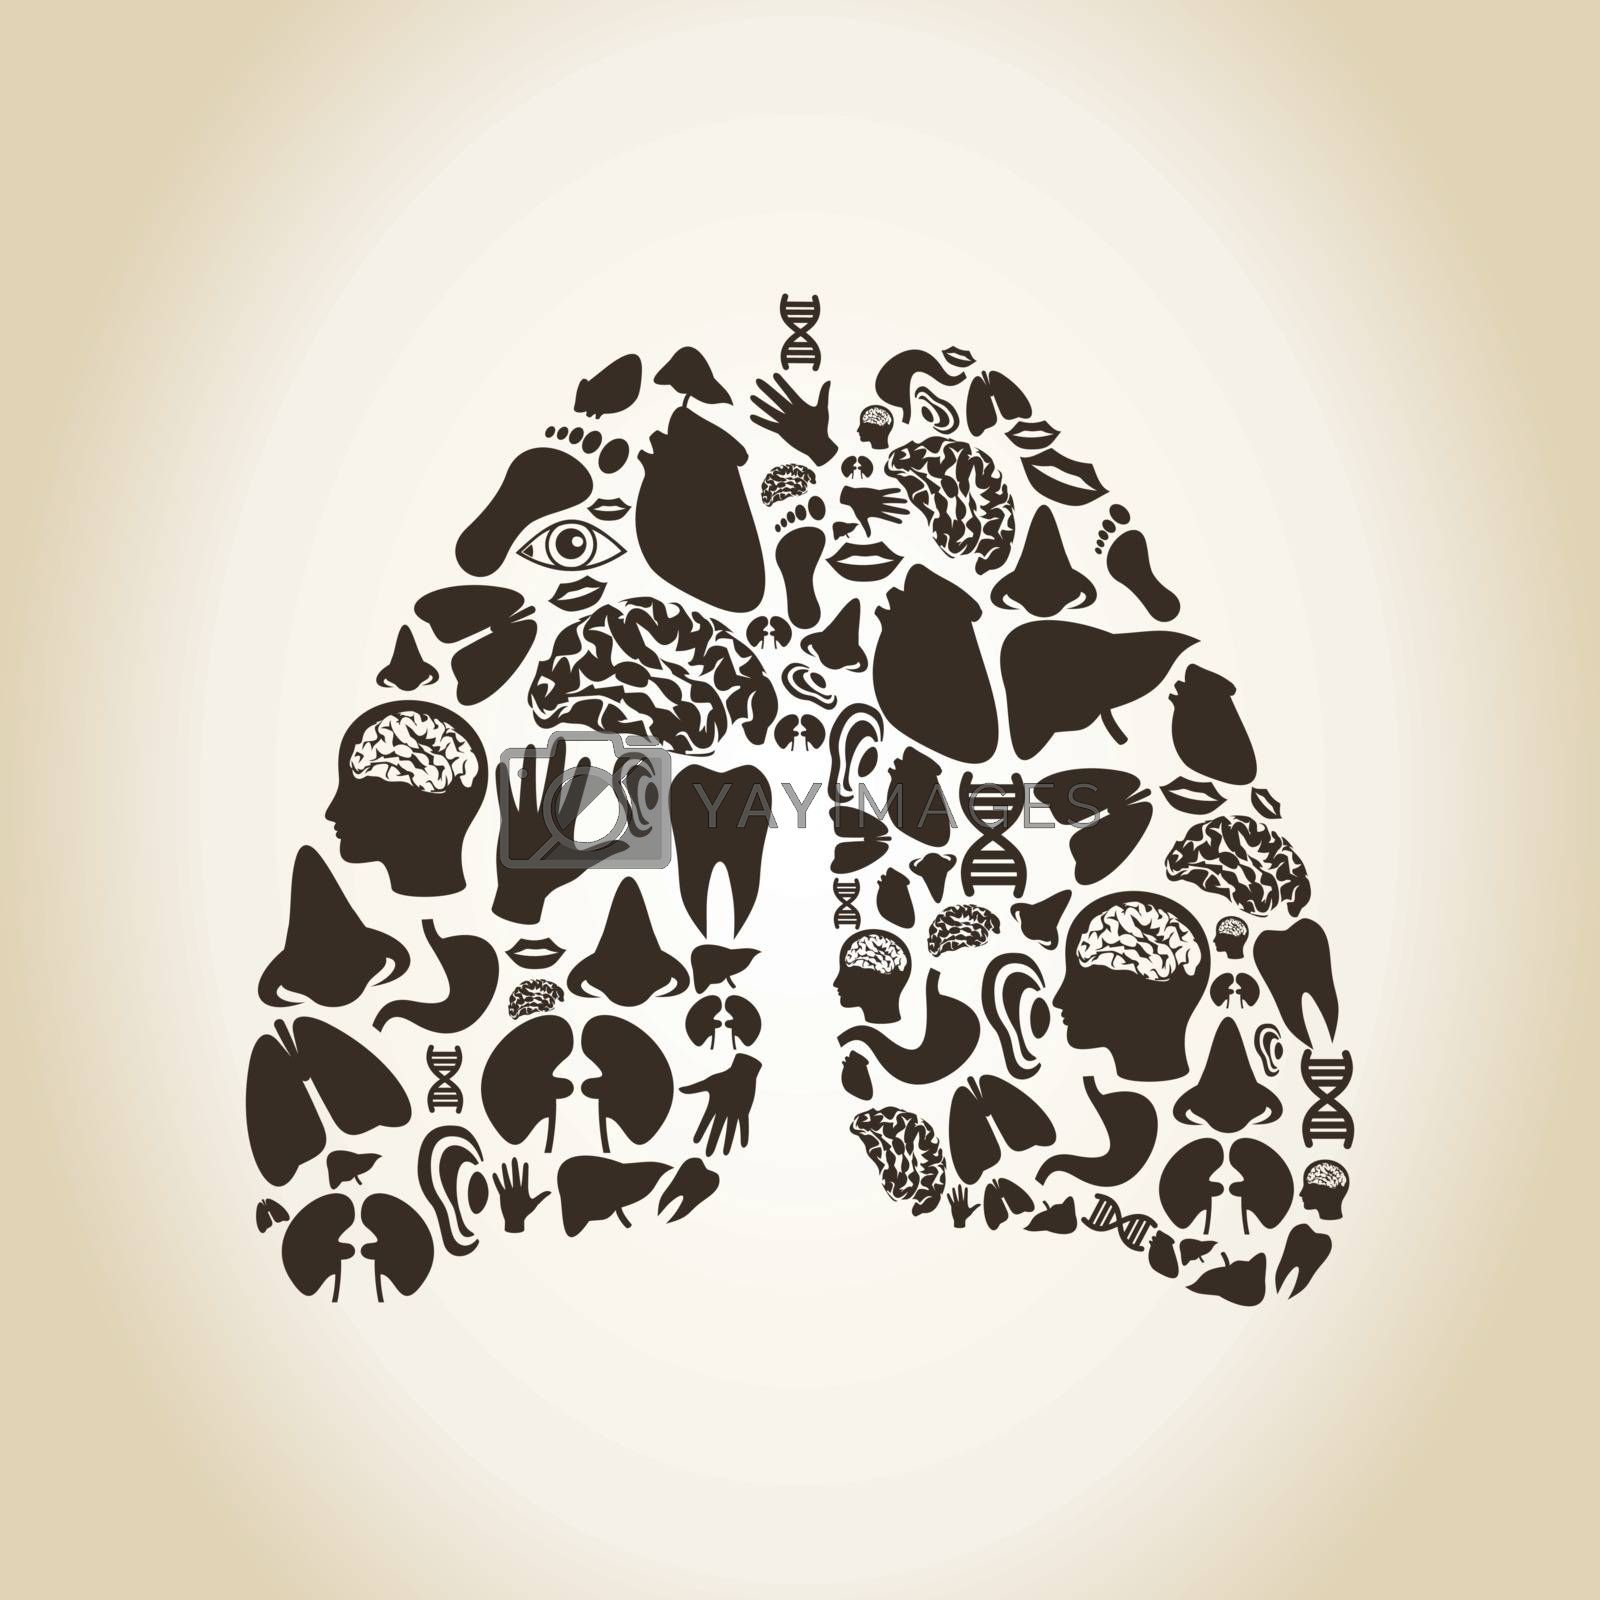 Lungs made of body parts. A vector illustration